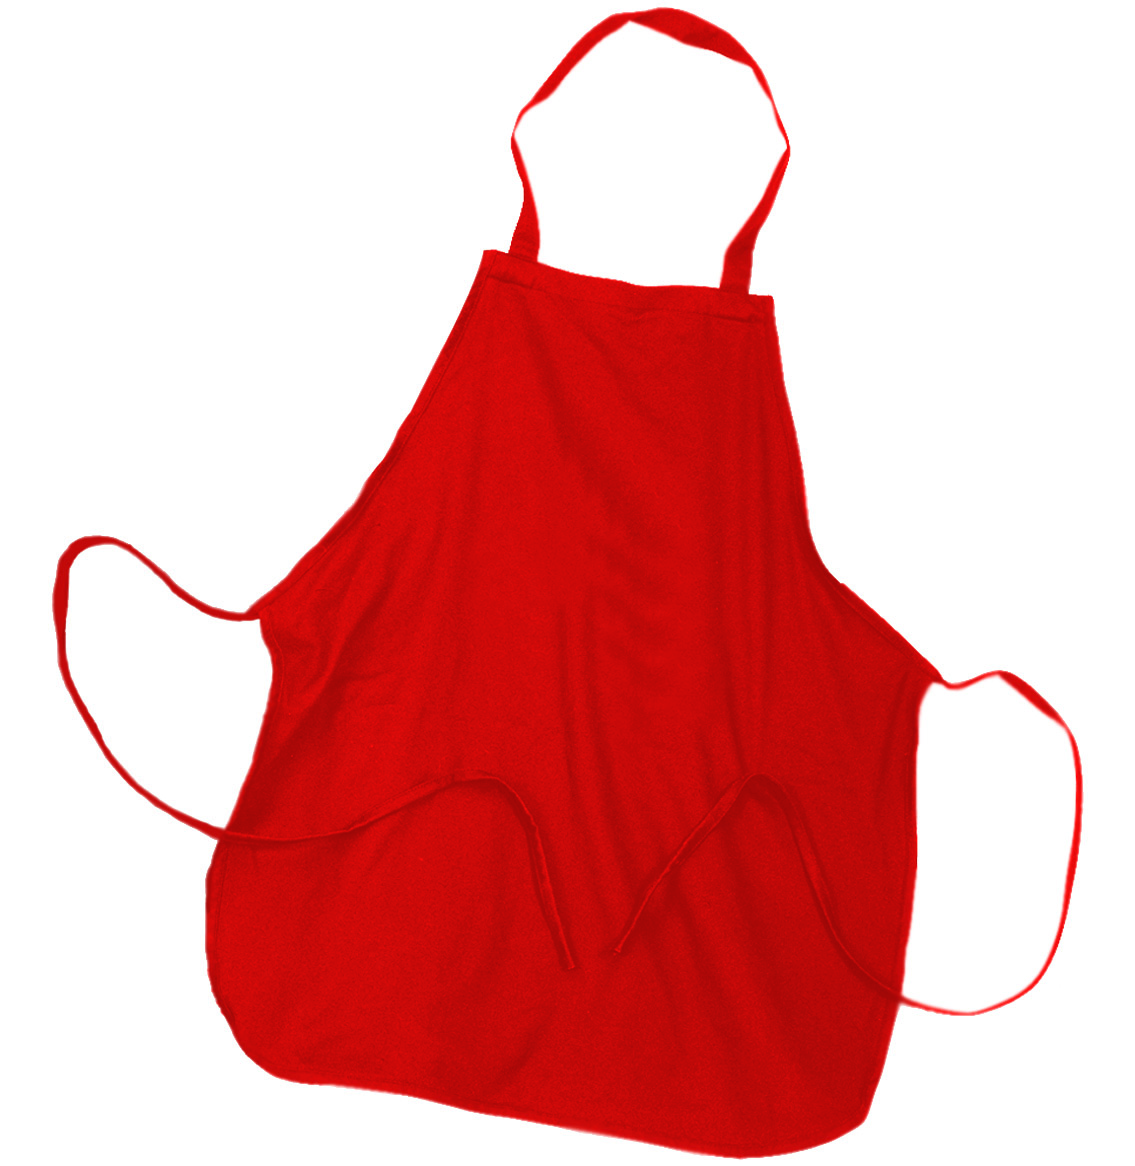 A debco innovation starts. Apron clipart template